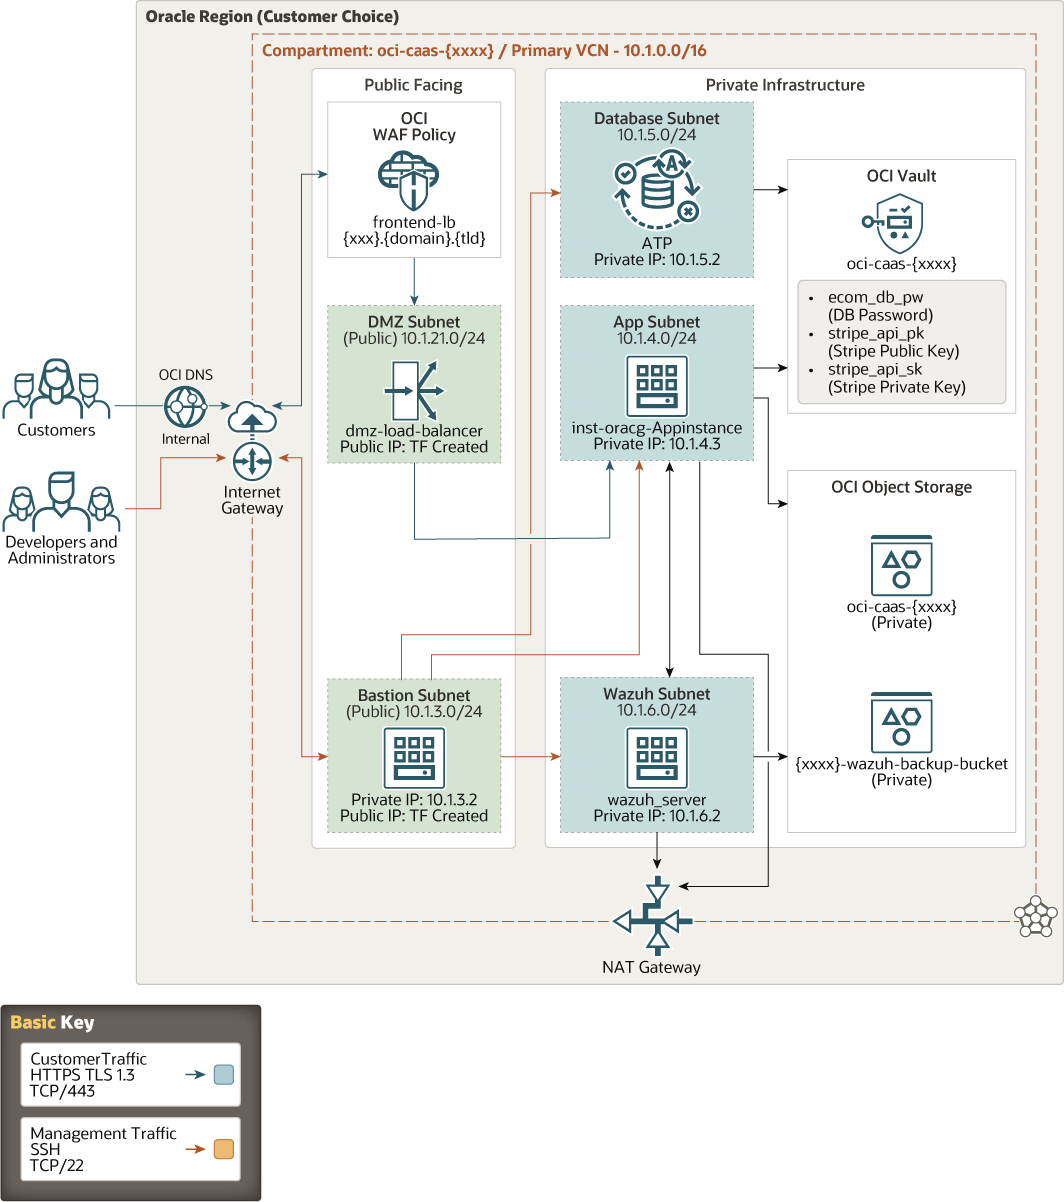 A graphic depicting the PCI reference architecture.